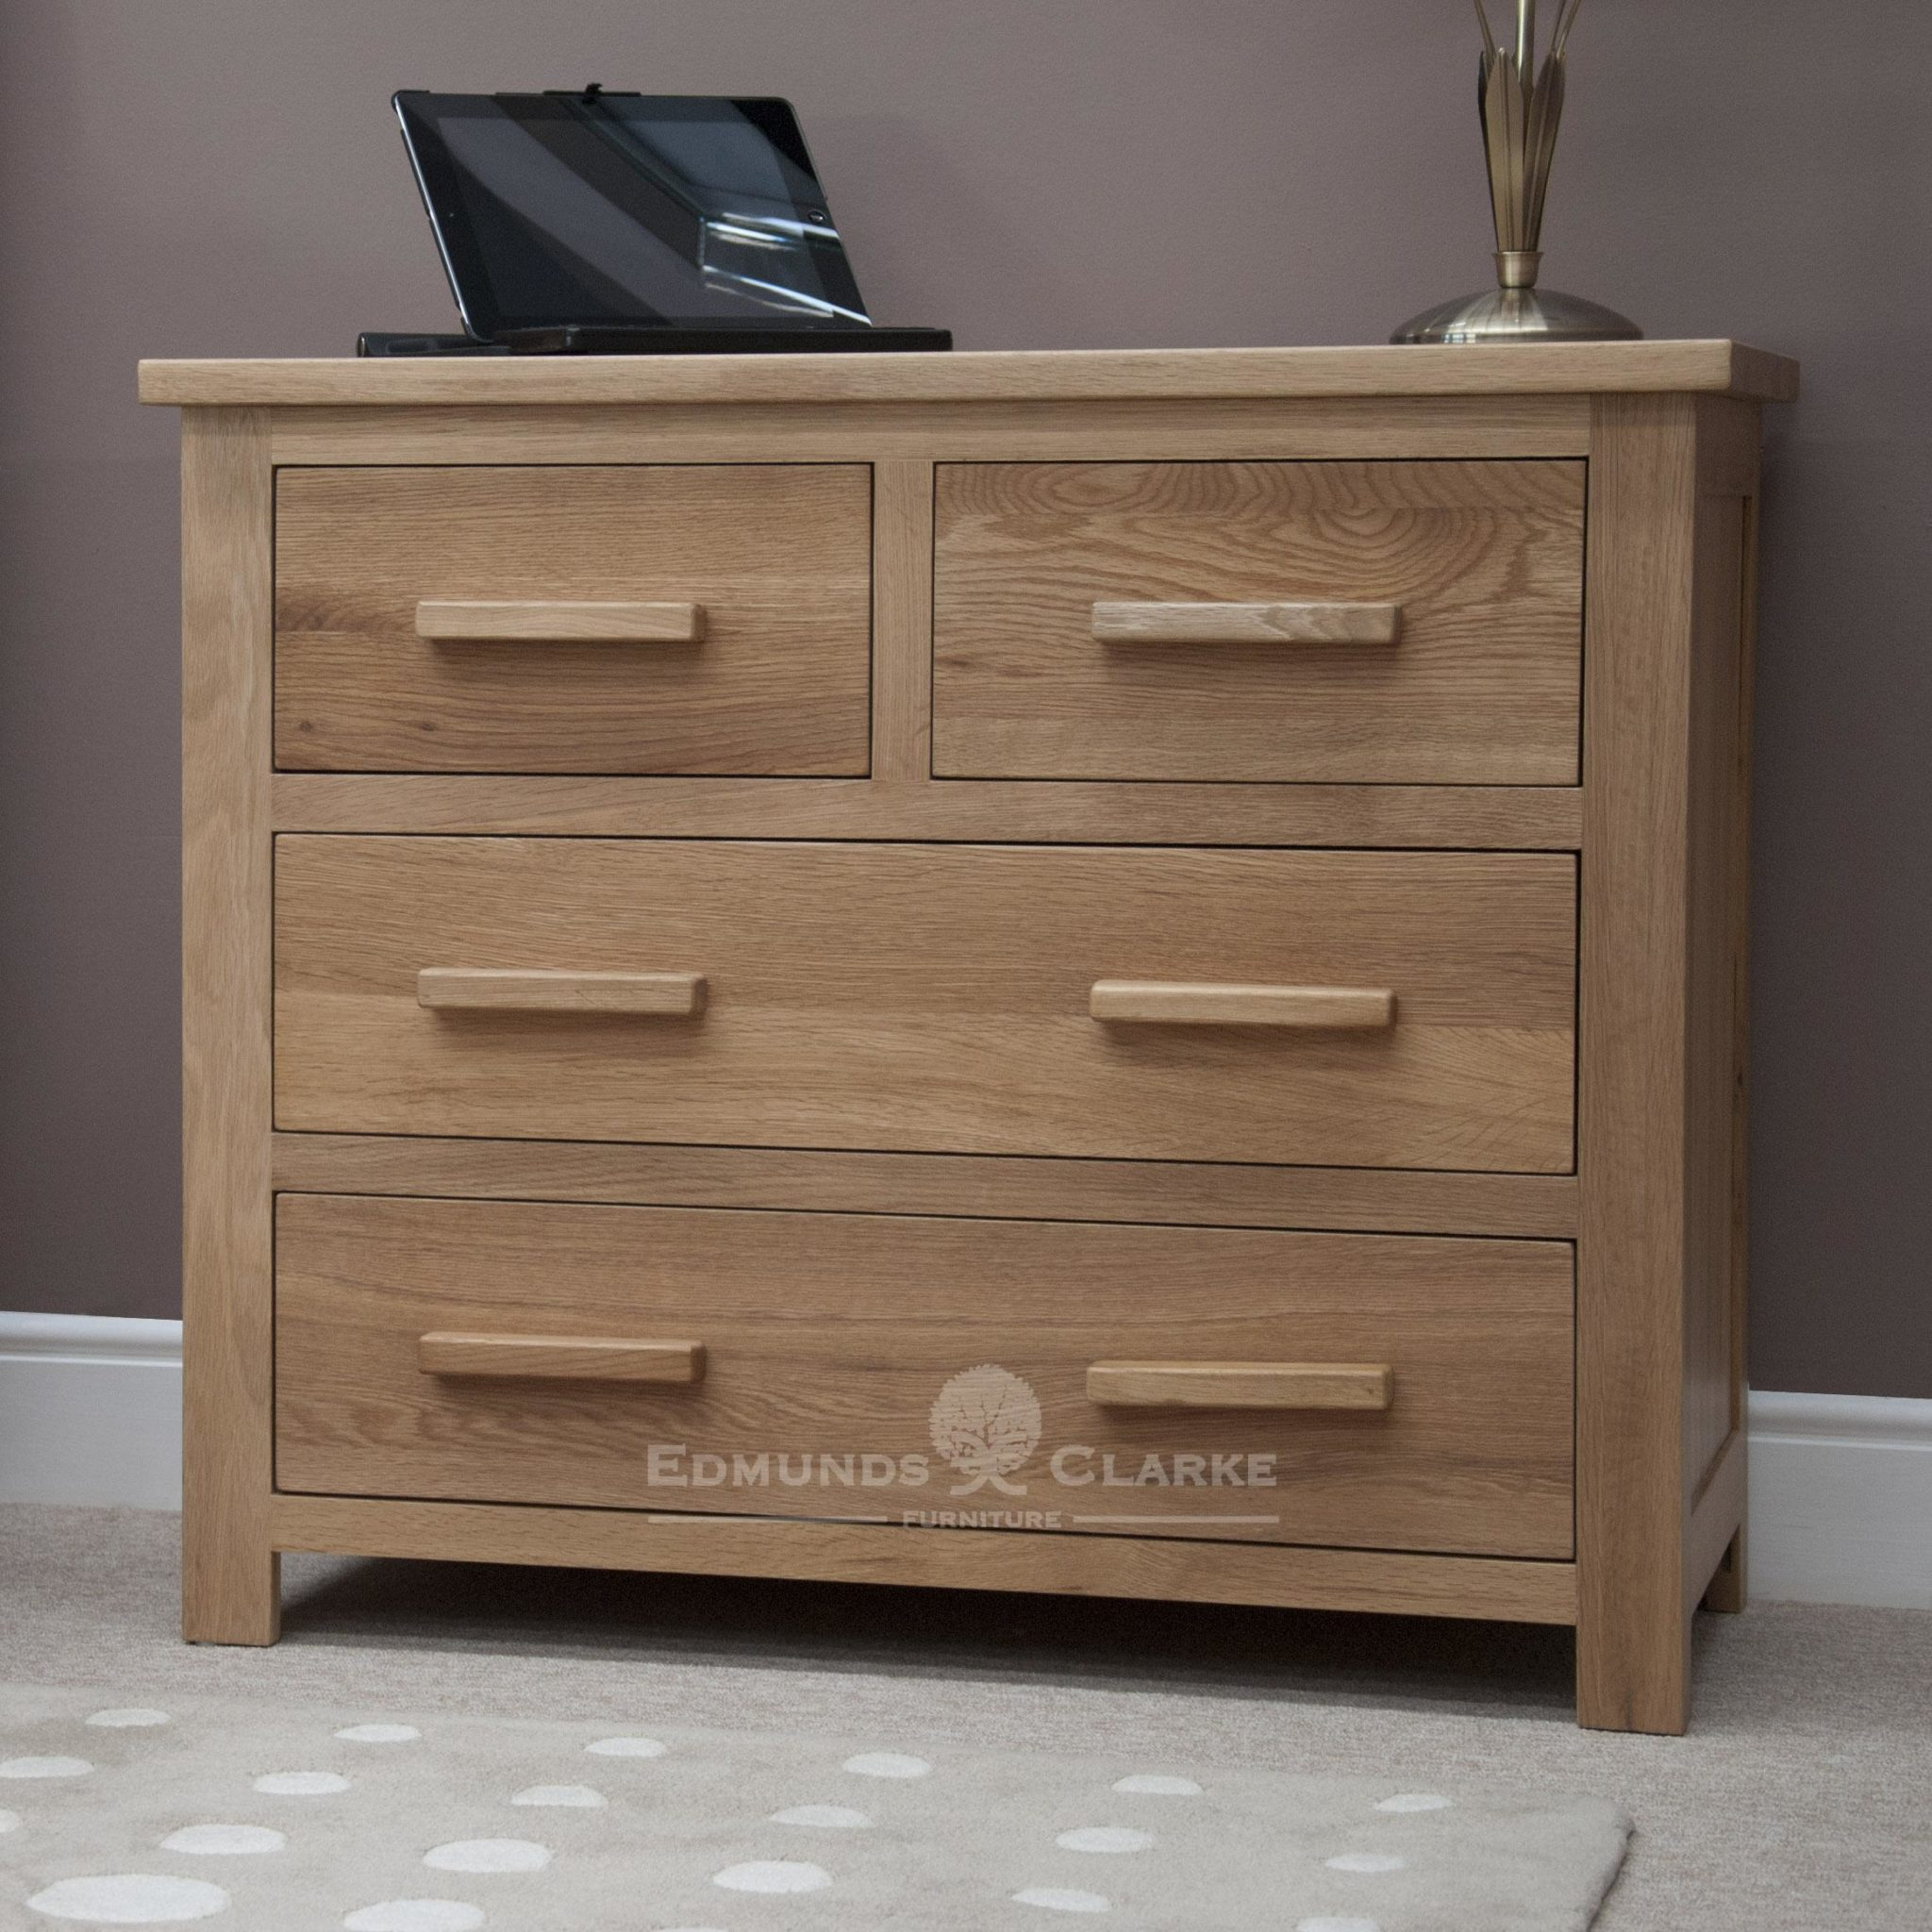 Bury Solid Oak 4 drawer chest . with 2 drawers and 2 long drawers under. light lacquered finish with choice of handles